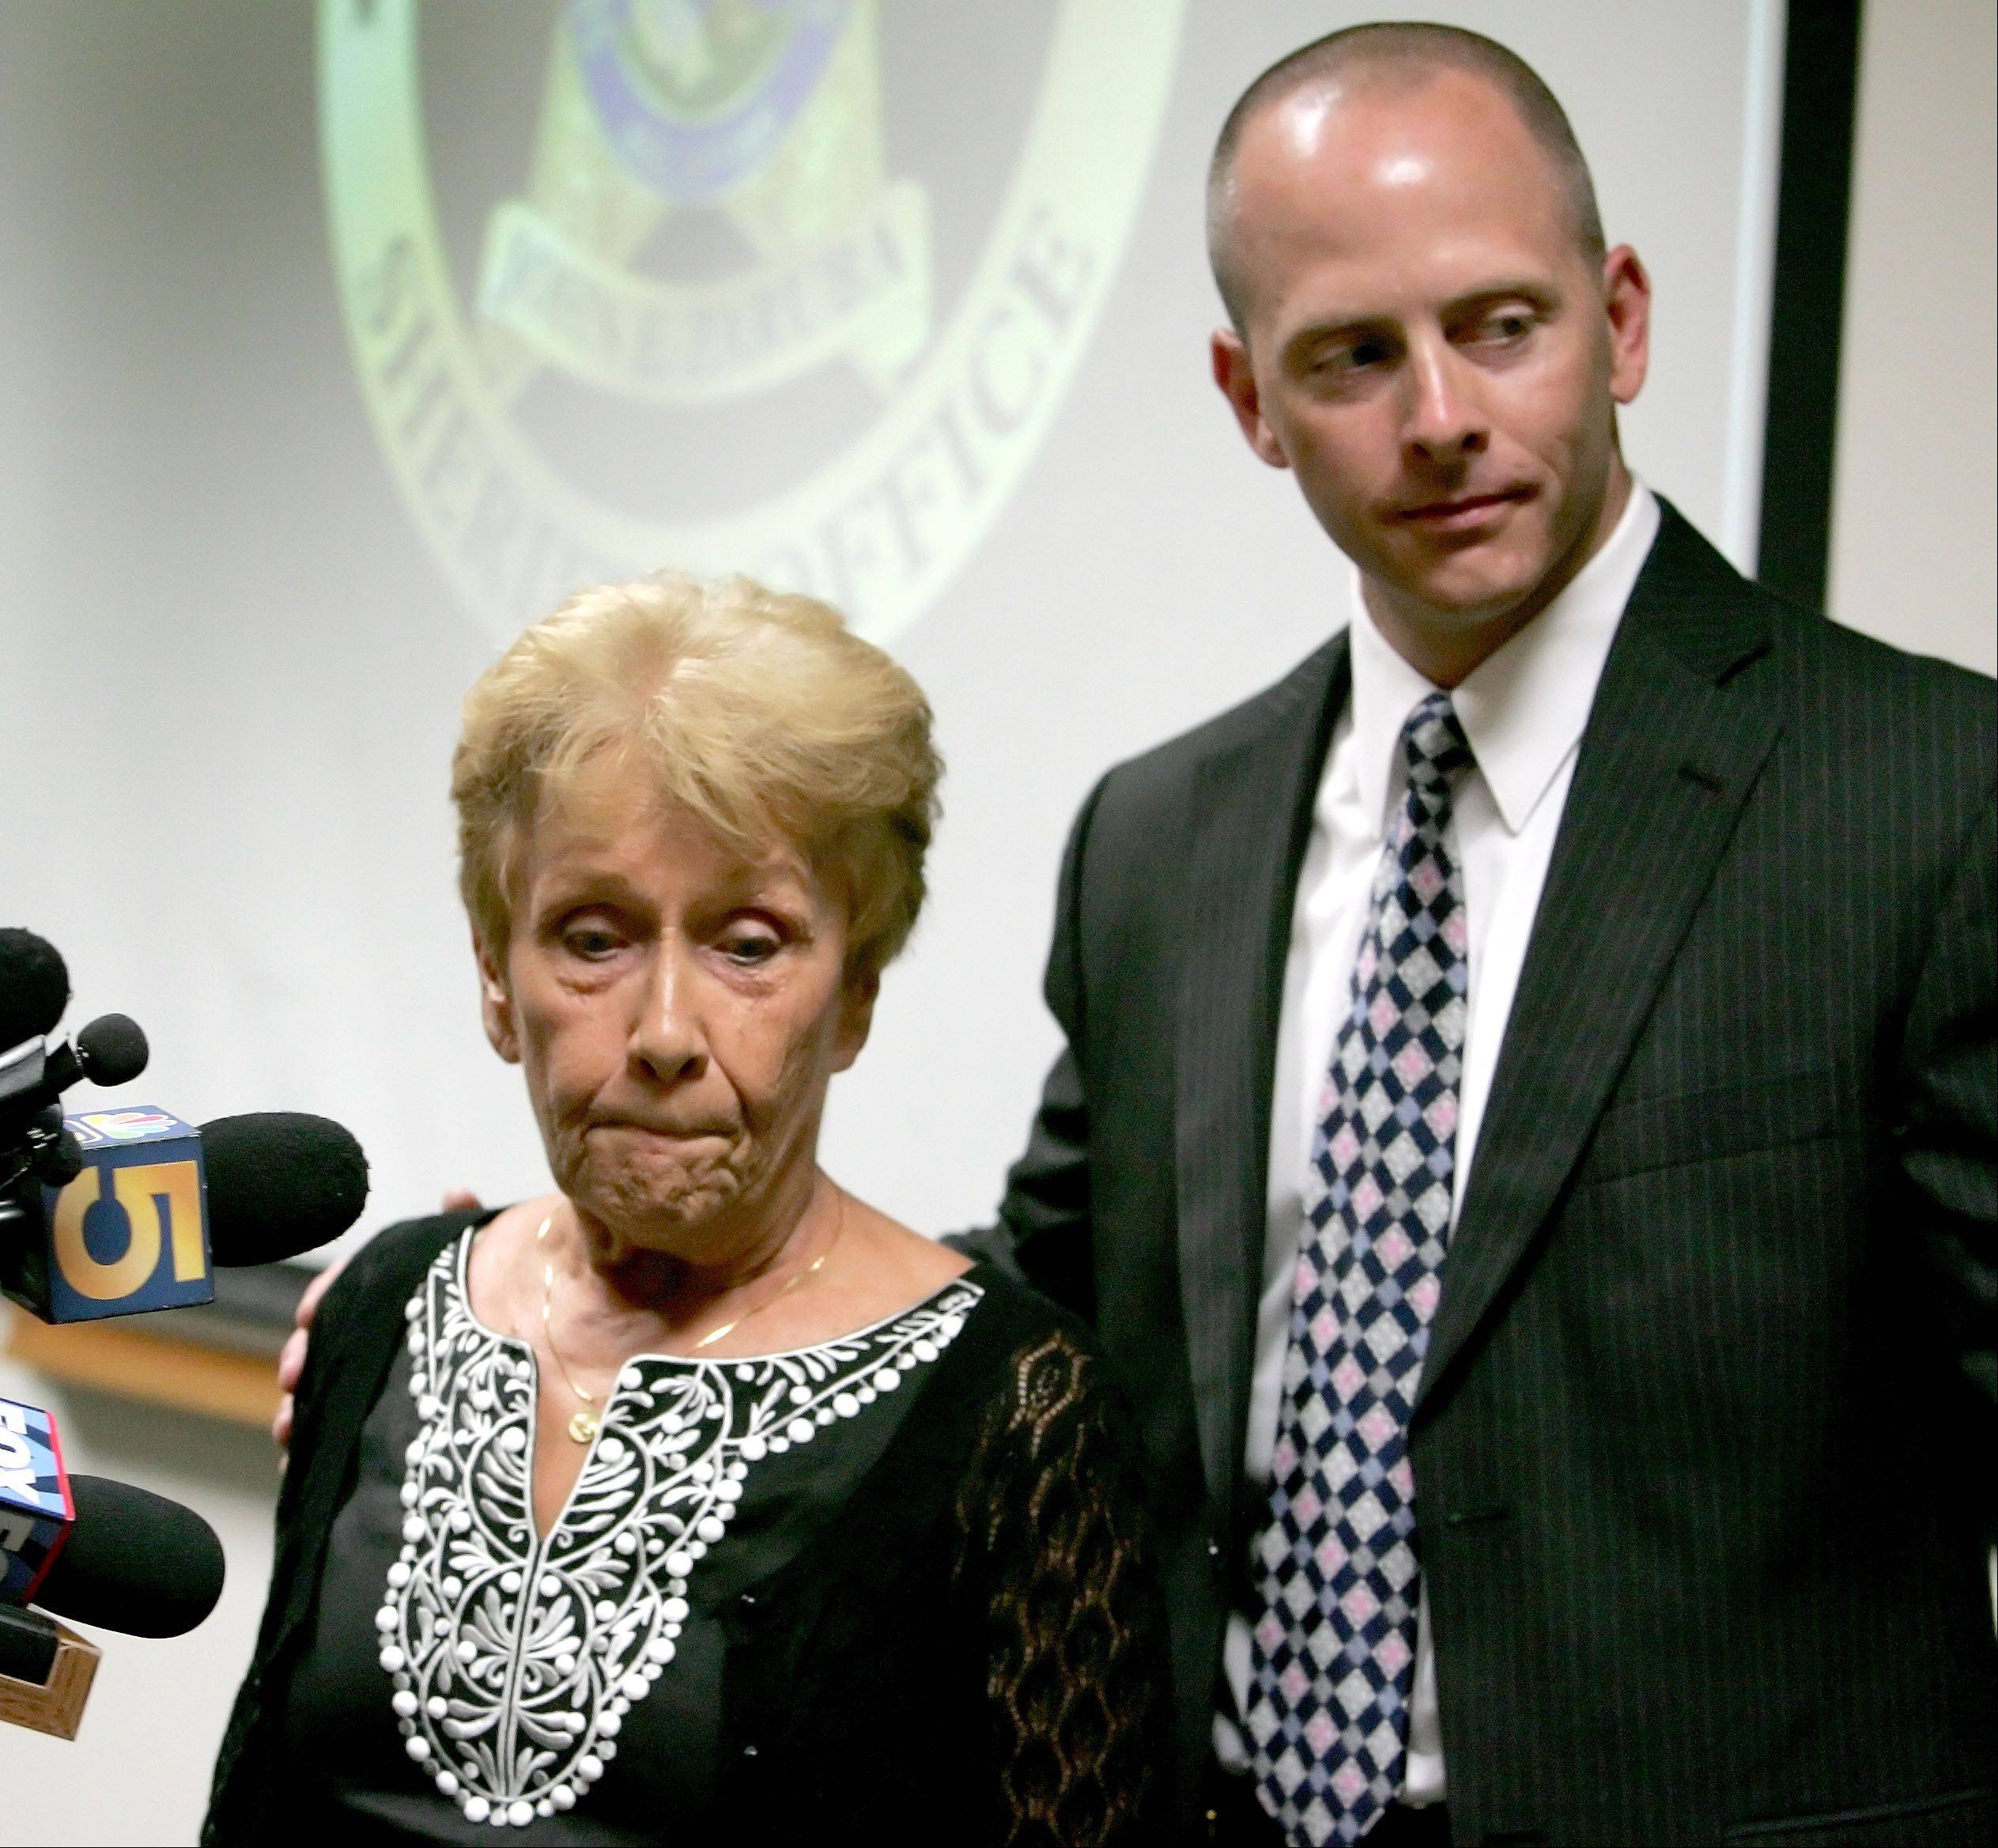 Sandy Wesselman finishes speaking at a news conference at the DuPage County sheriff's office with Sgt. Robert Harris. Her daughter Kristy was murdered on July 21, 1985, near Glen Ellyn. The case remains unsolved.